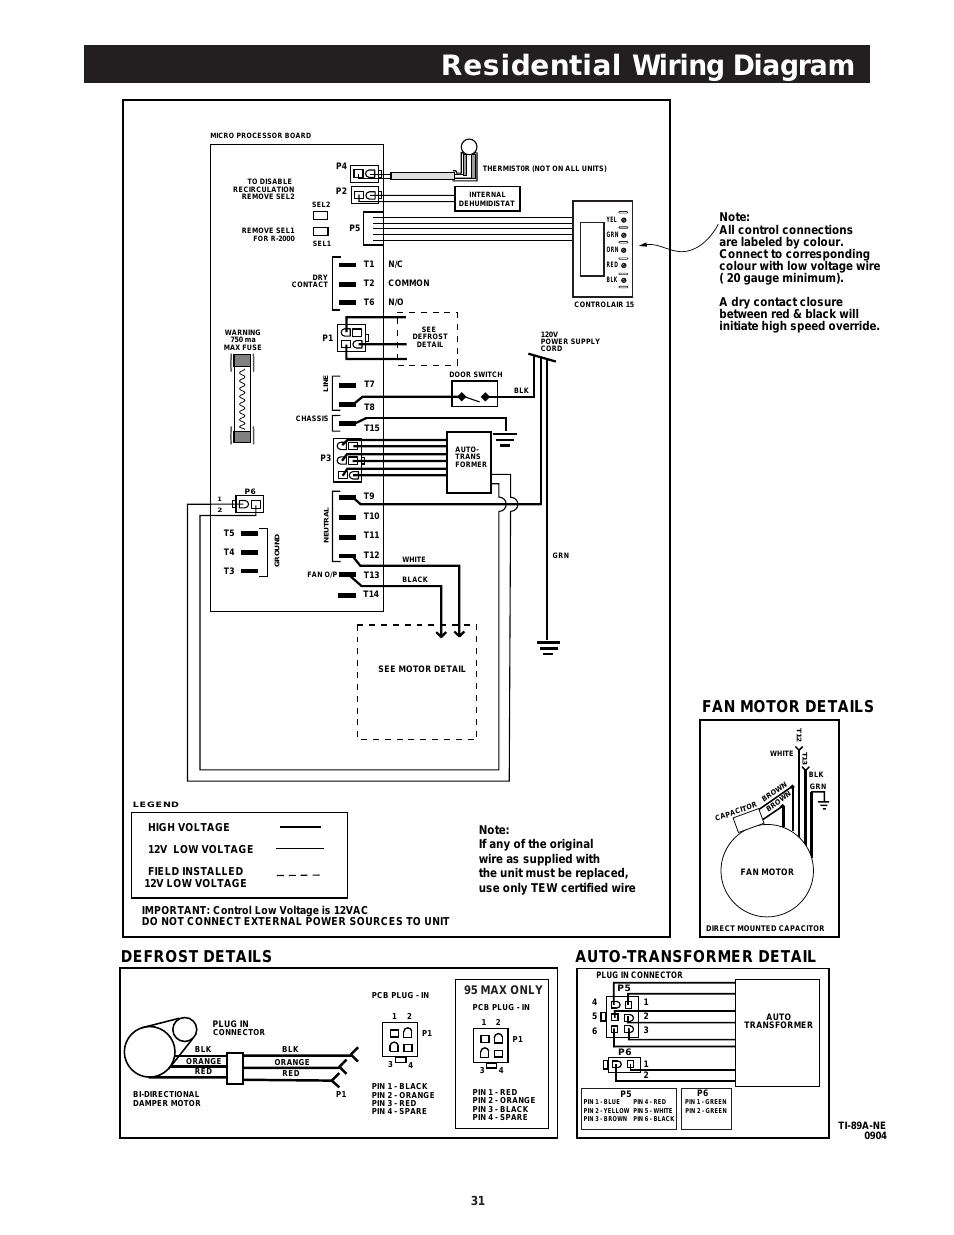 The Best 12 Way To Read Auto Wiring Diagrams Ideas Https Bacamajalah Com The Best 12 Way To Read A Diagram Electrical Wiring Diagram Electronic Engineering